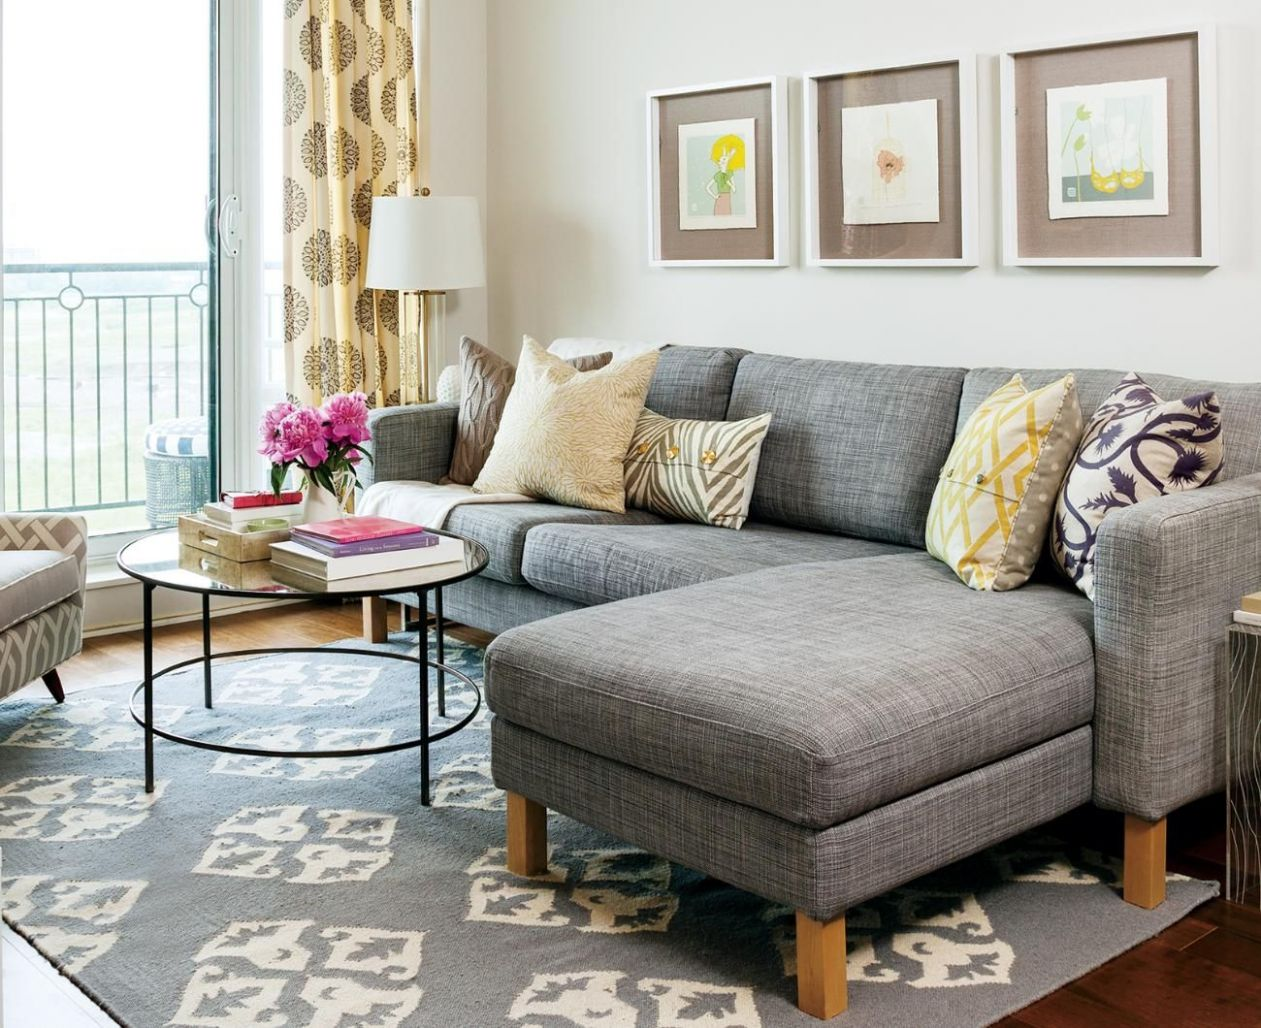 Apartment tour: Colourful rental makeover (With images) | Living ...